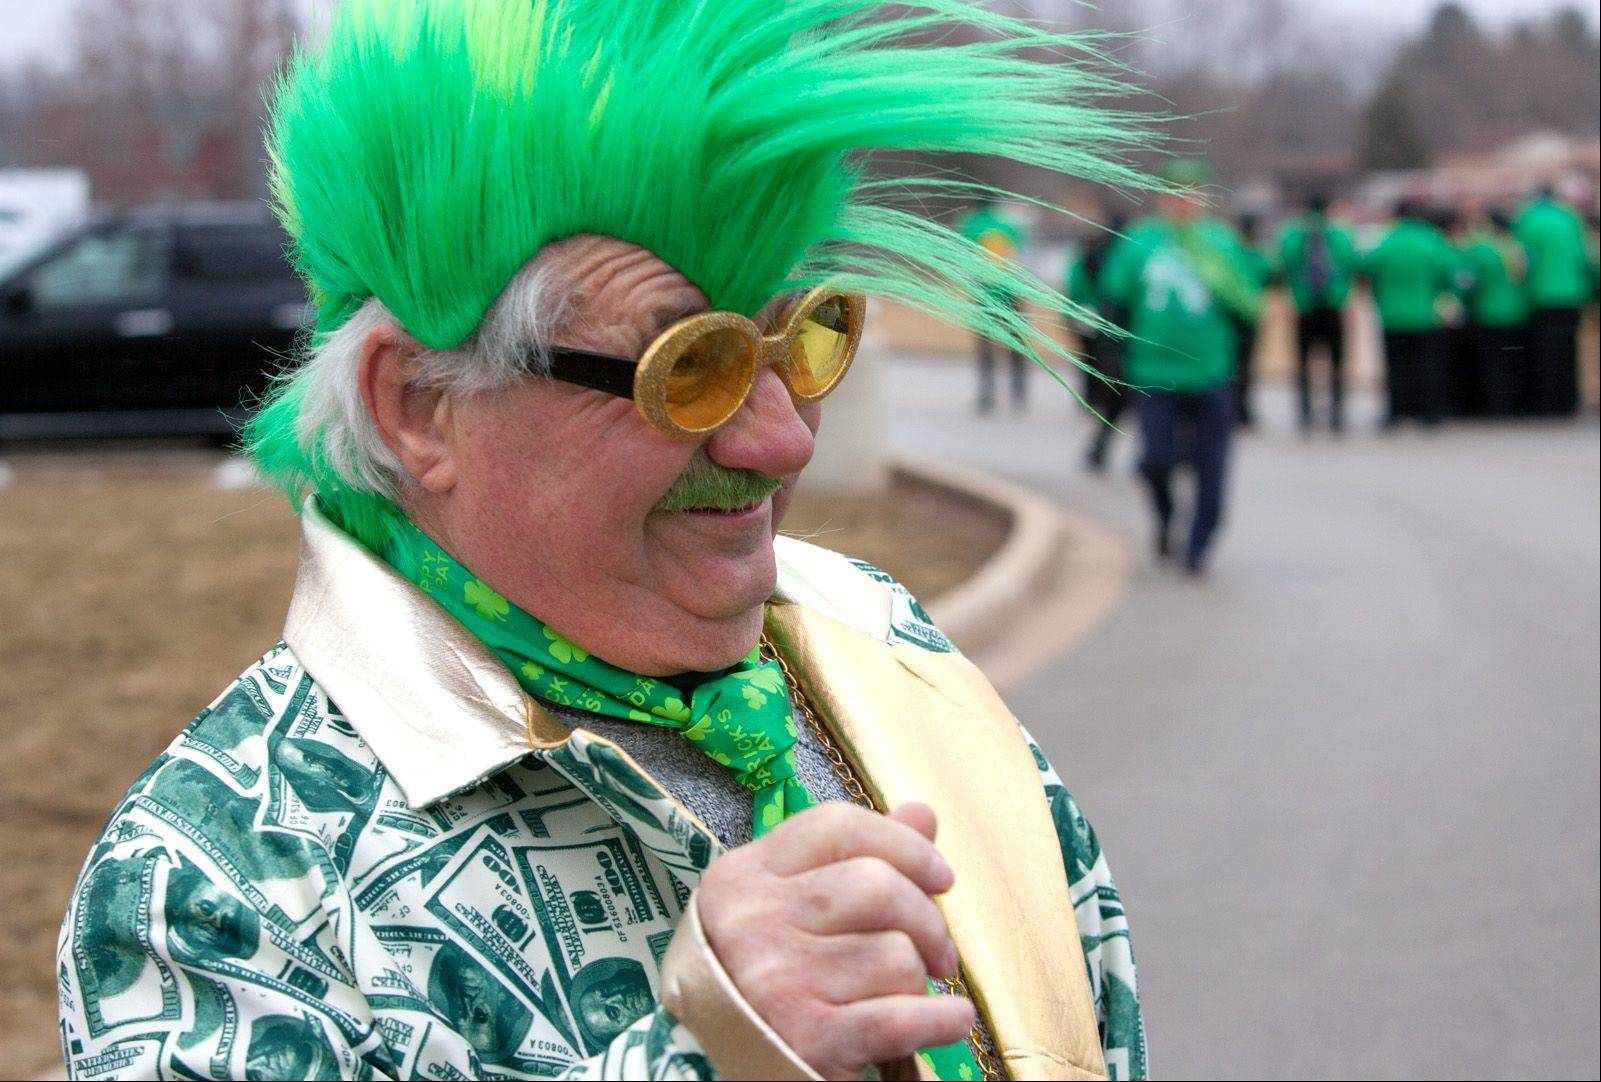 Bob Ryan prepares to walk with Marquette Companies of Naperville in the Naperville St. Patrick's Day parade Saturday.